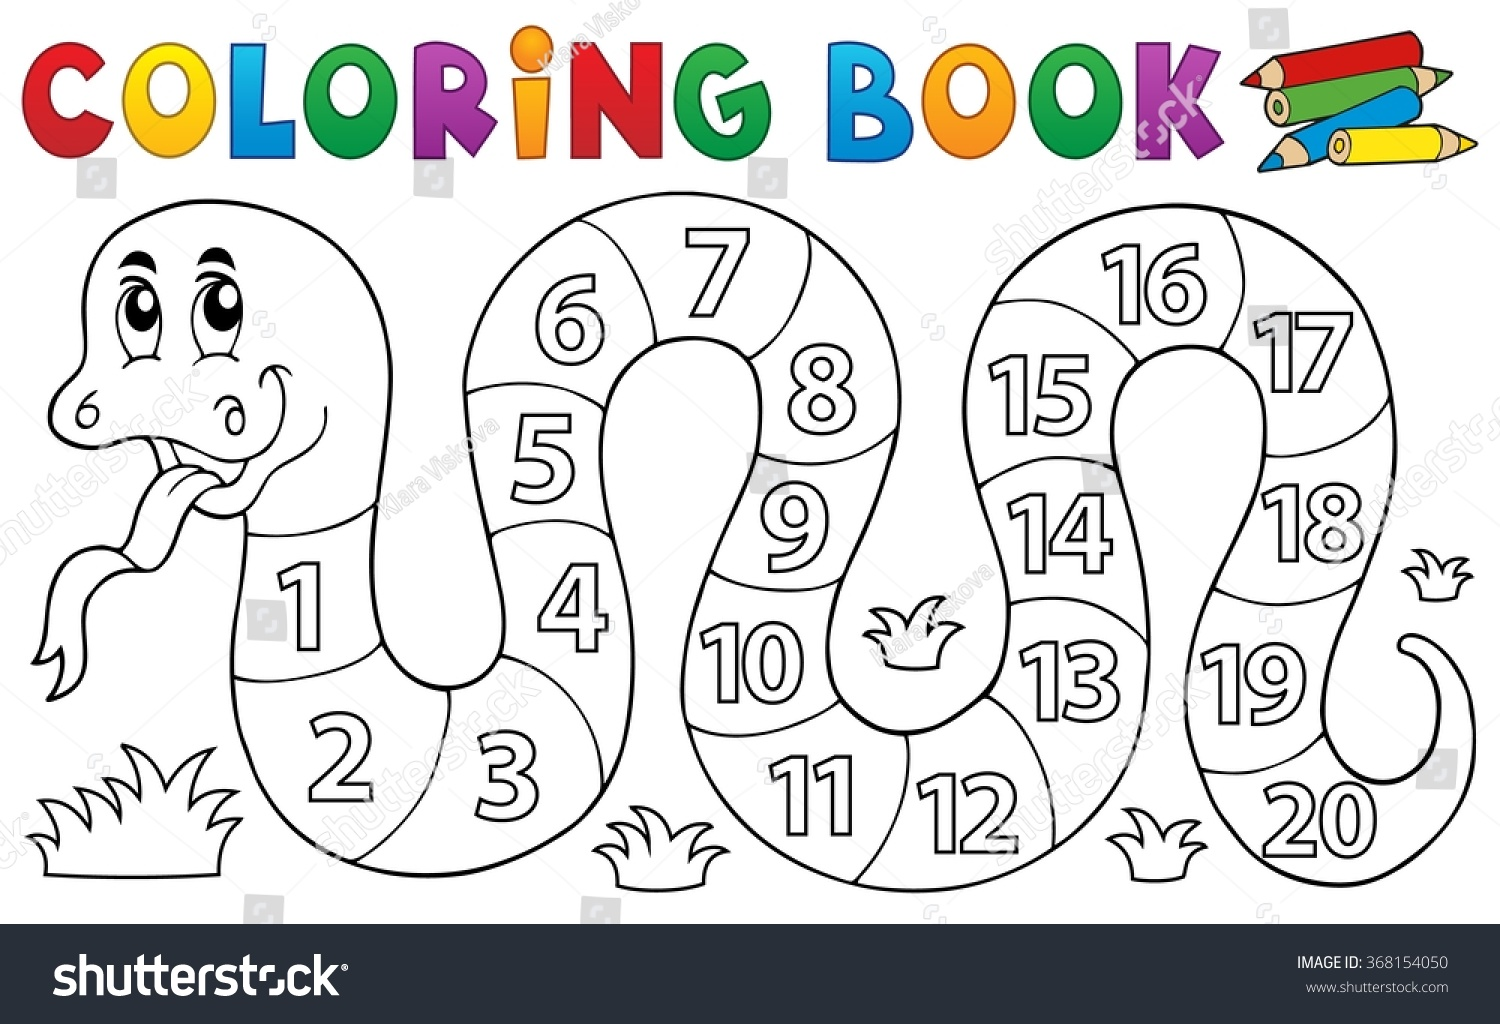 Coloring Book Snake With Numbers Theme